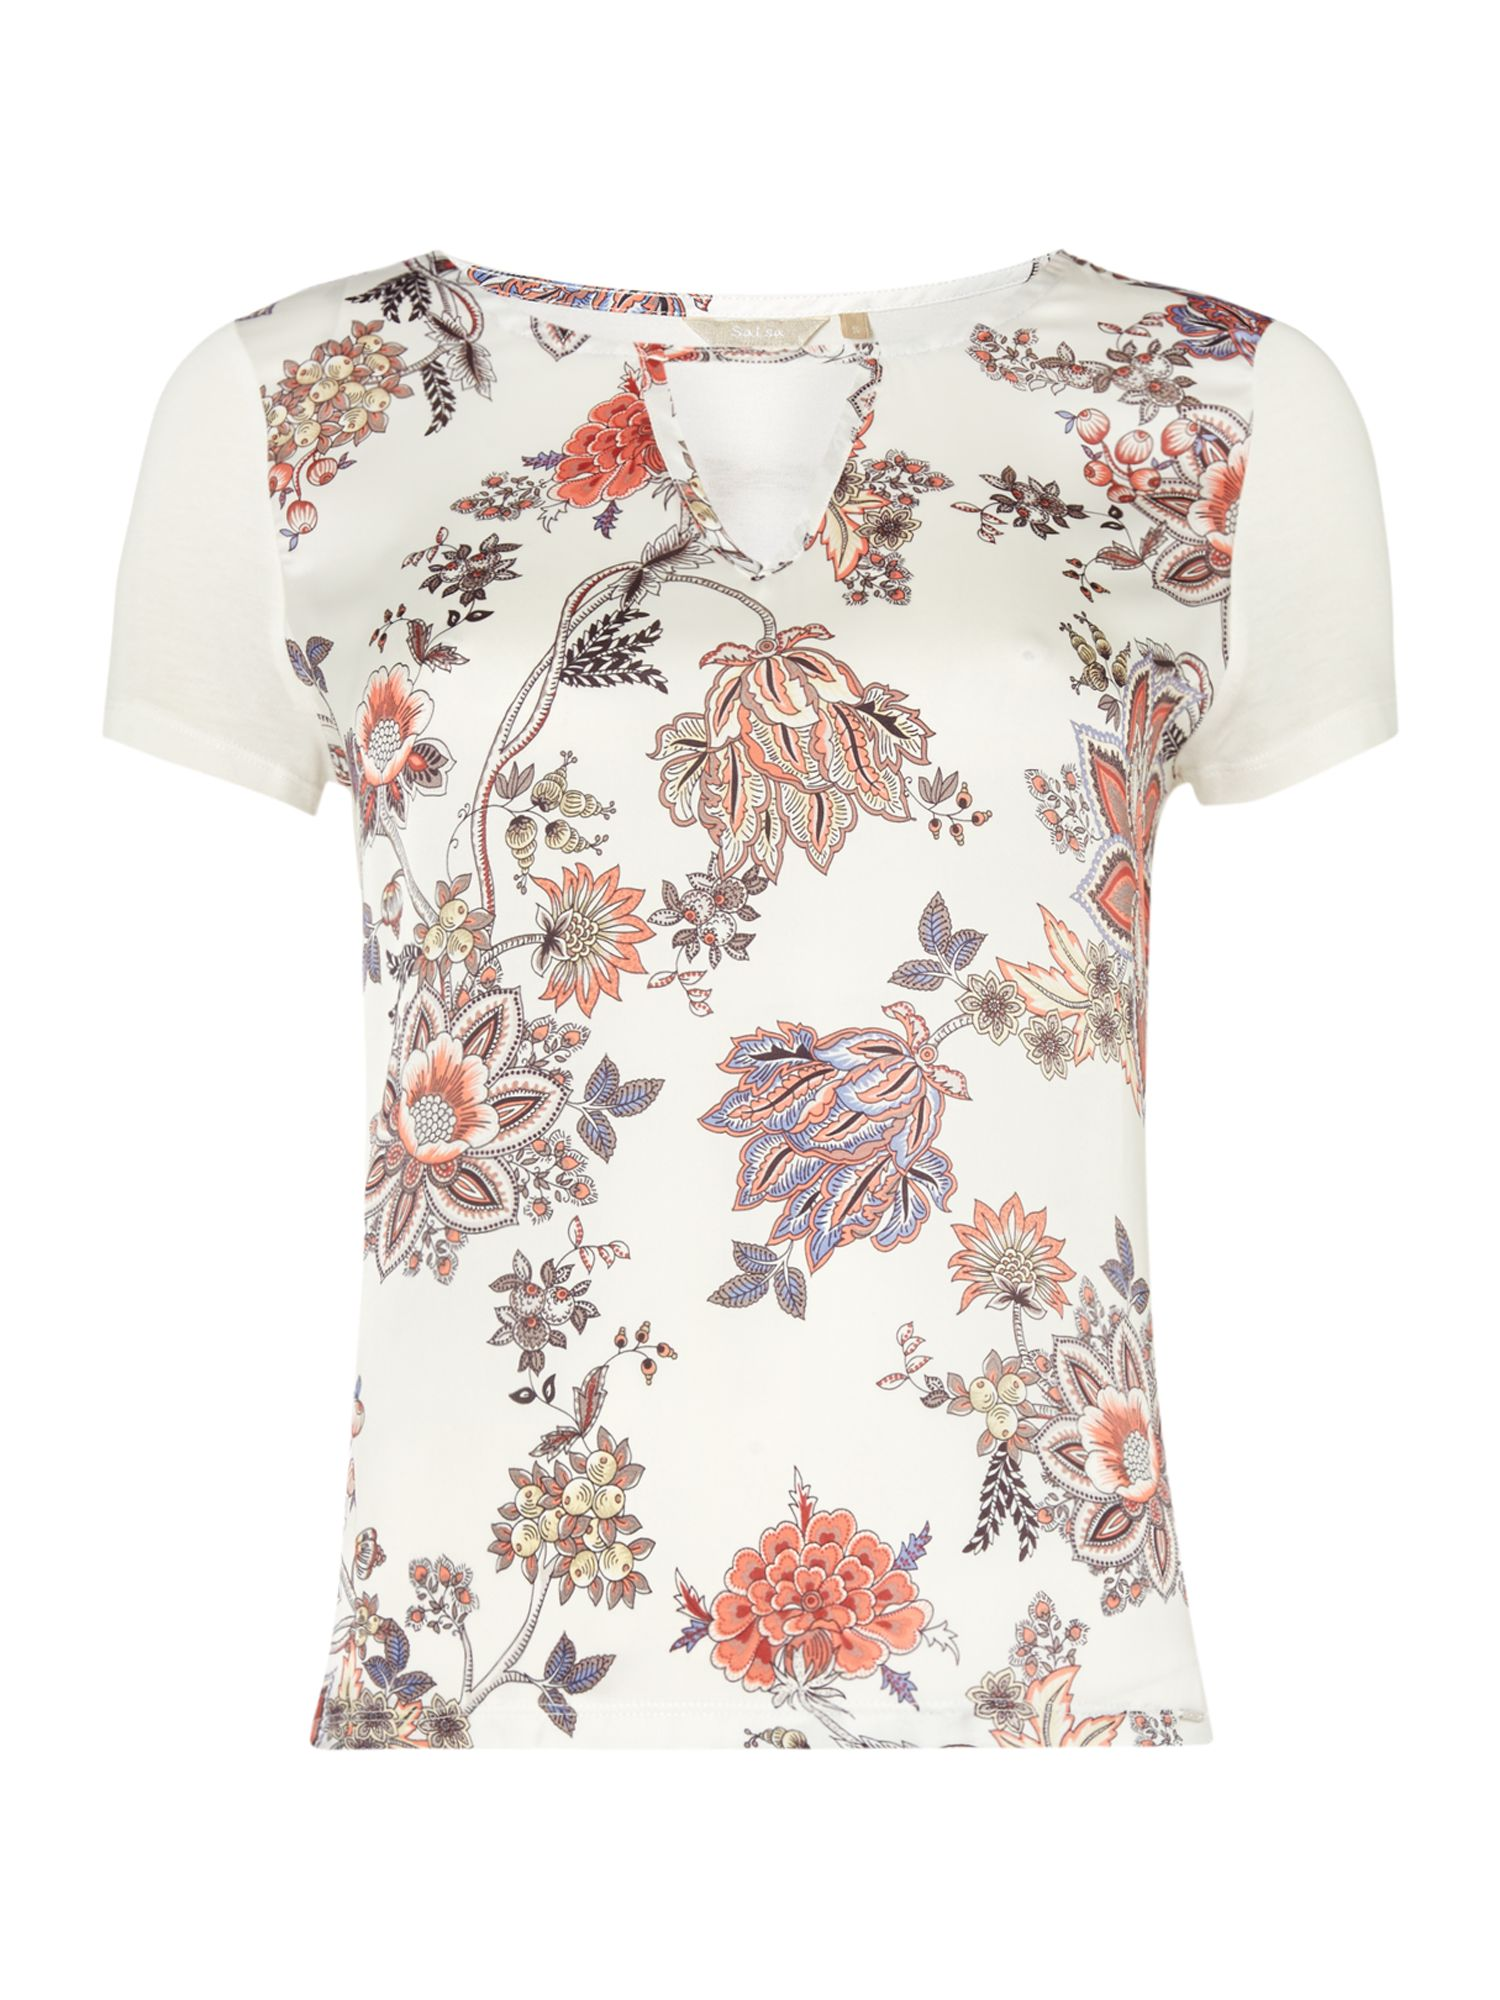 Salsa Short Sleeve Floral T-Shirt With Cut Out V-Neck, Multi-Coloured